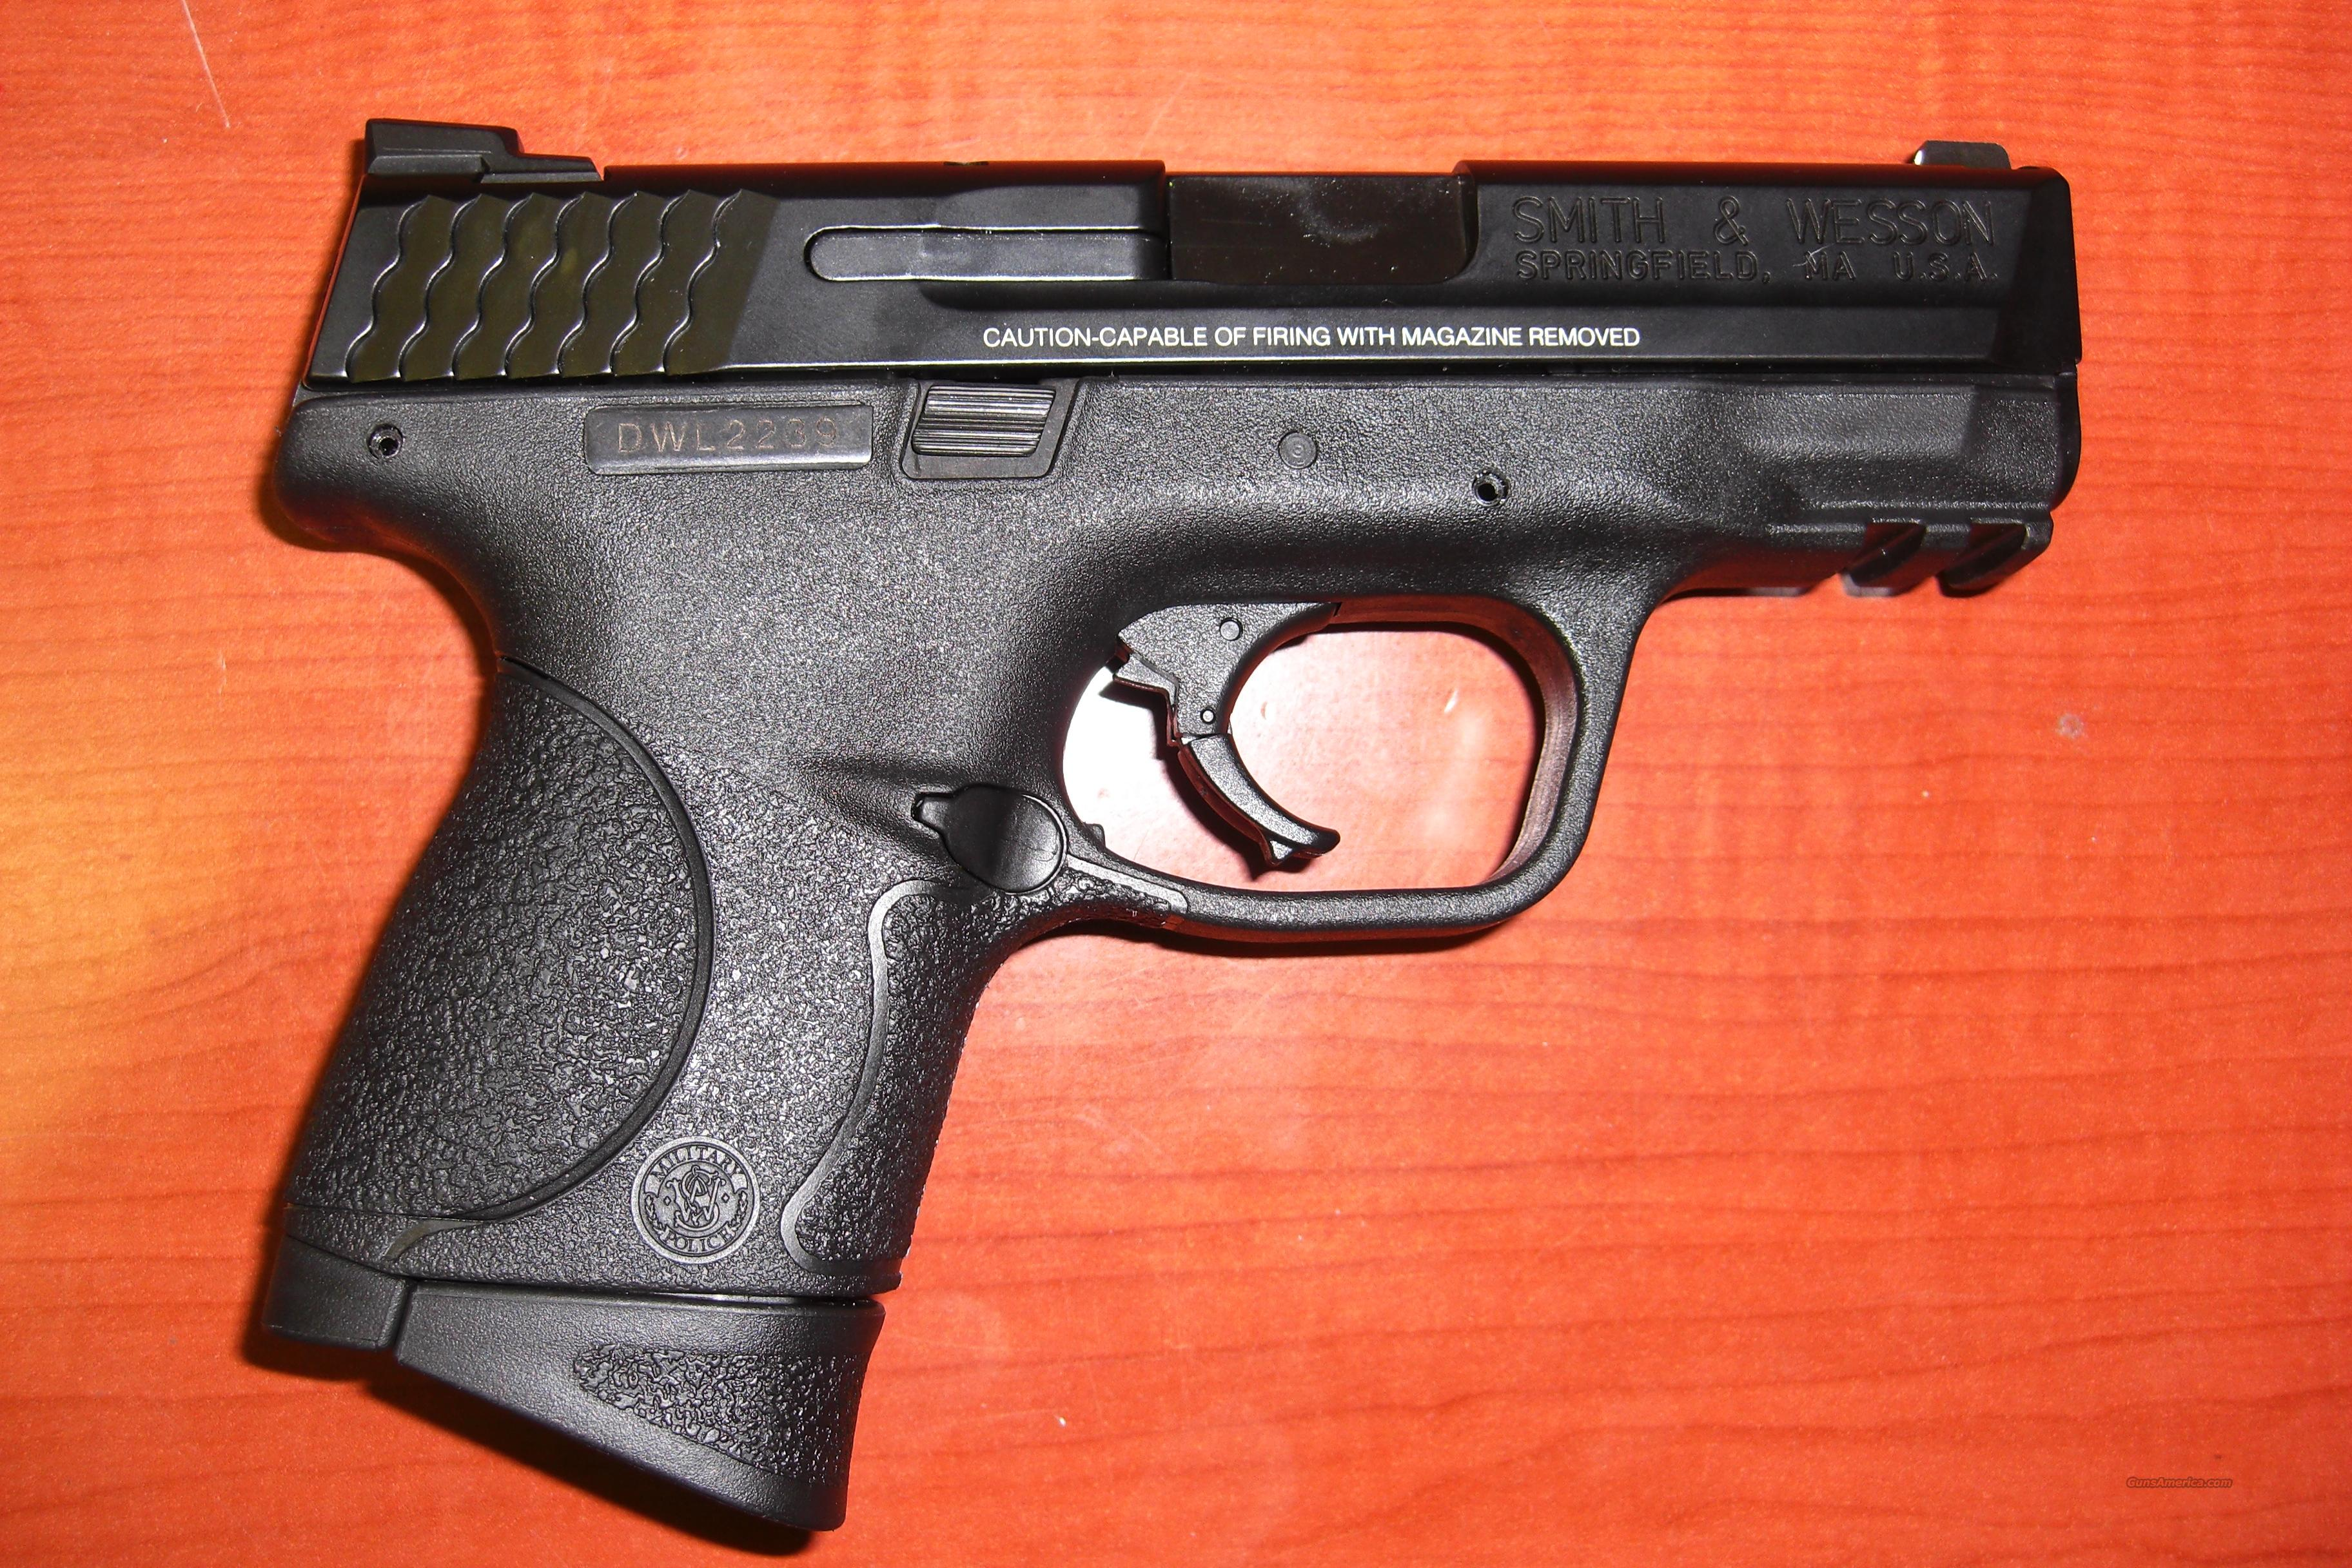 M & P 9C  Guns > Pistols > Smith & Wesson Pistols - Autos > Polymer Frame